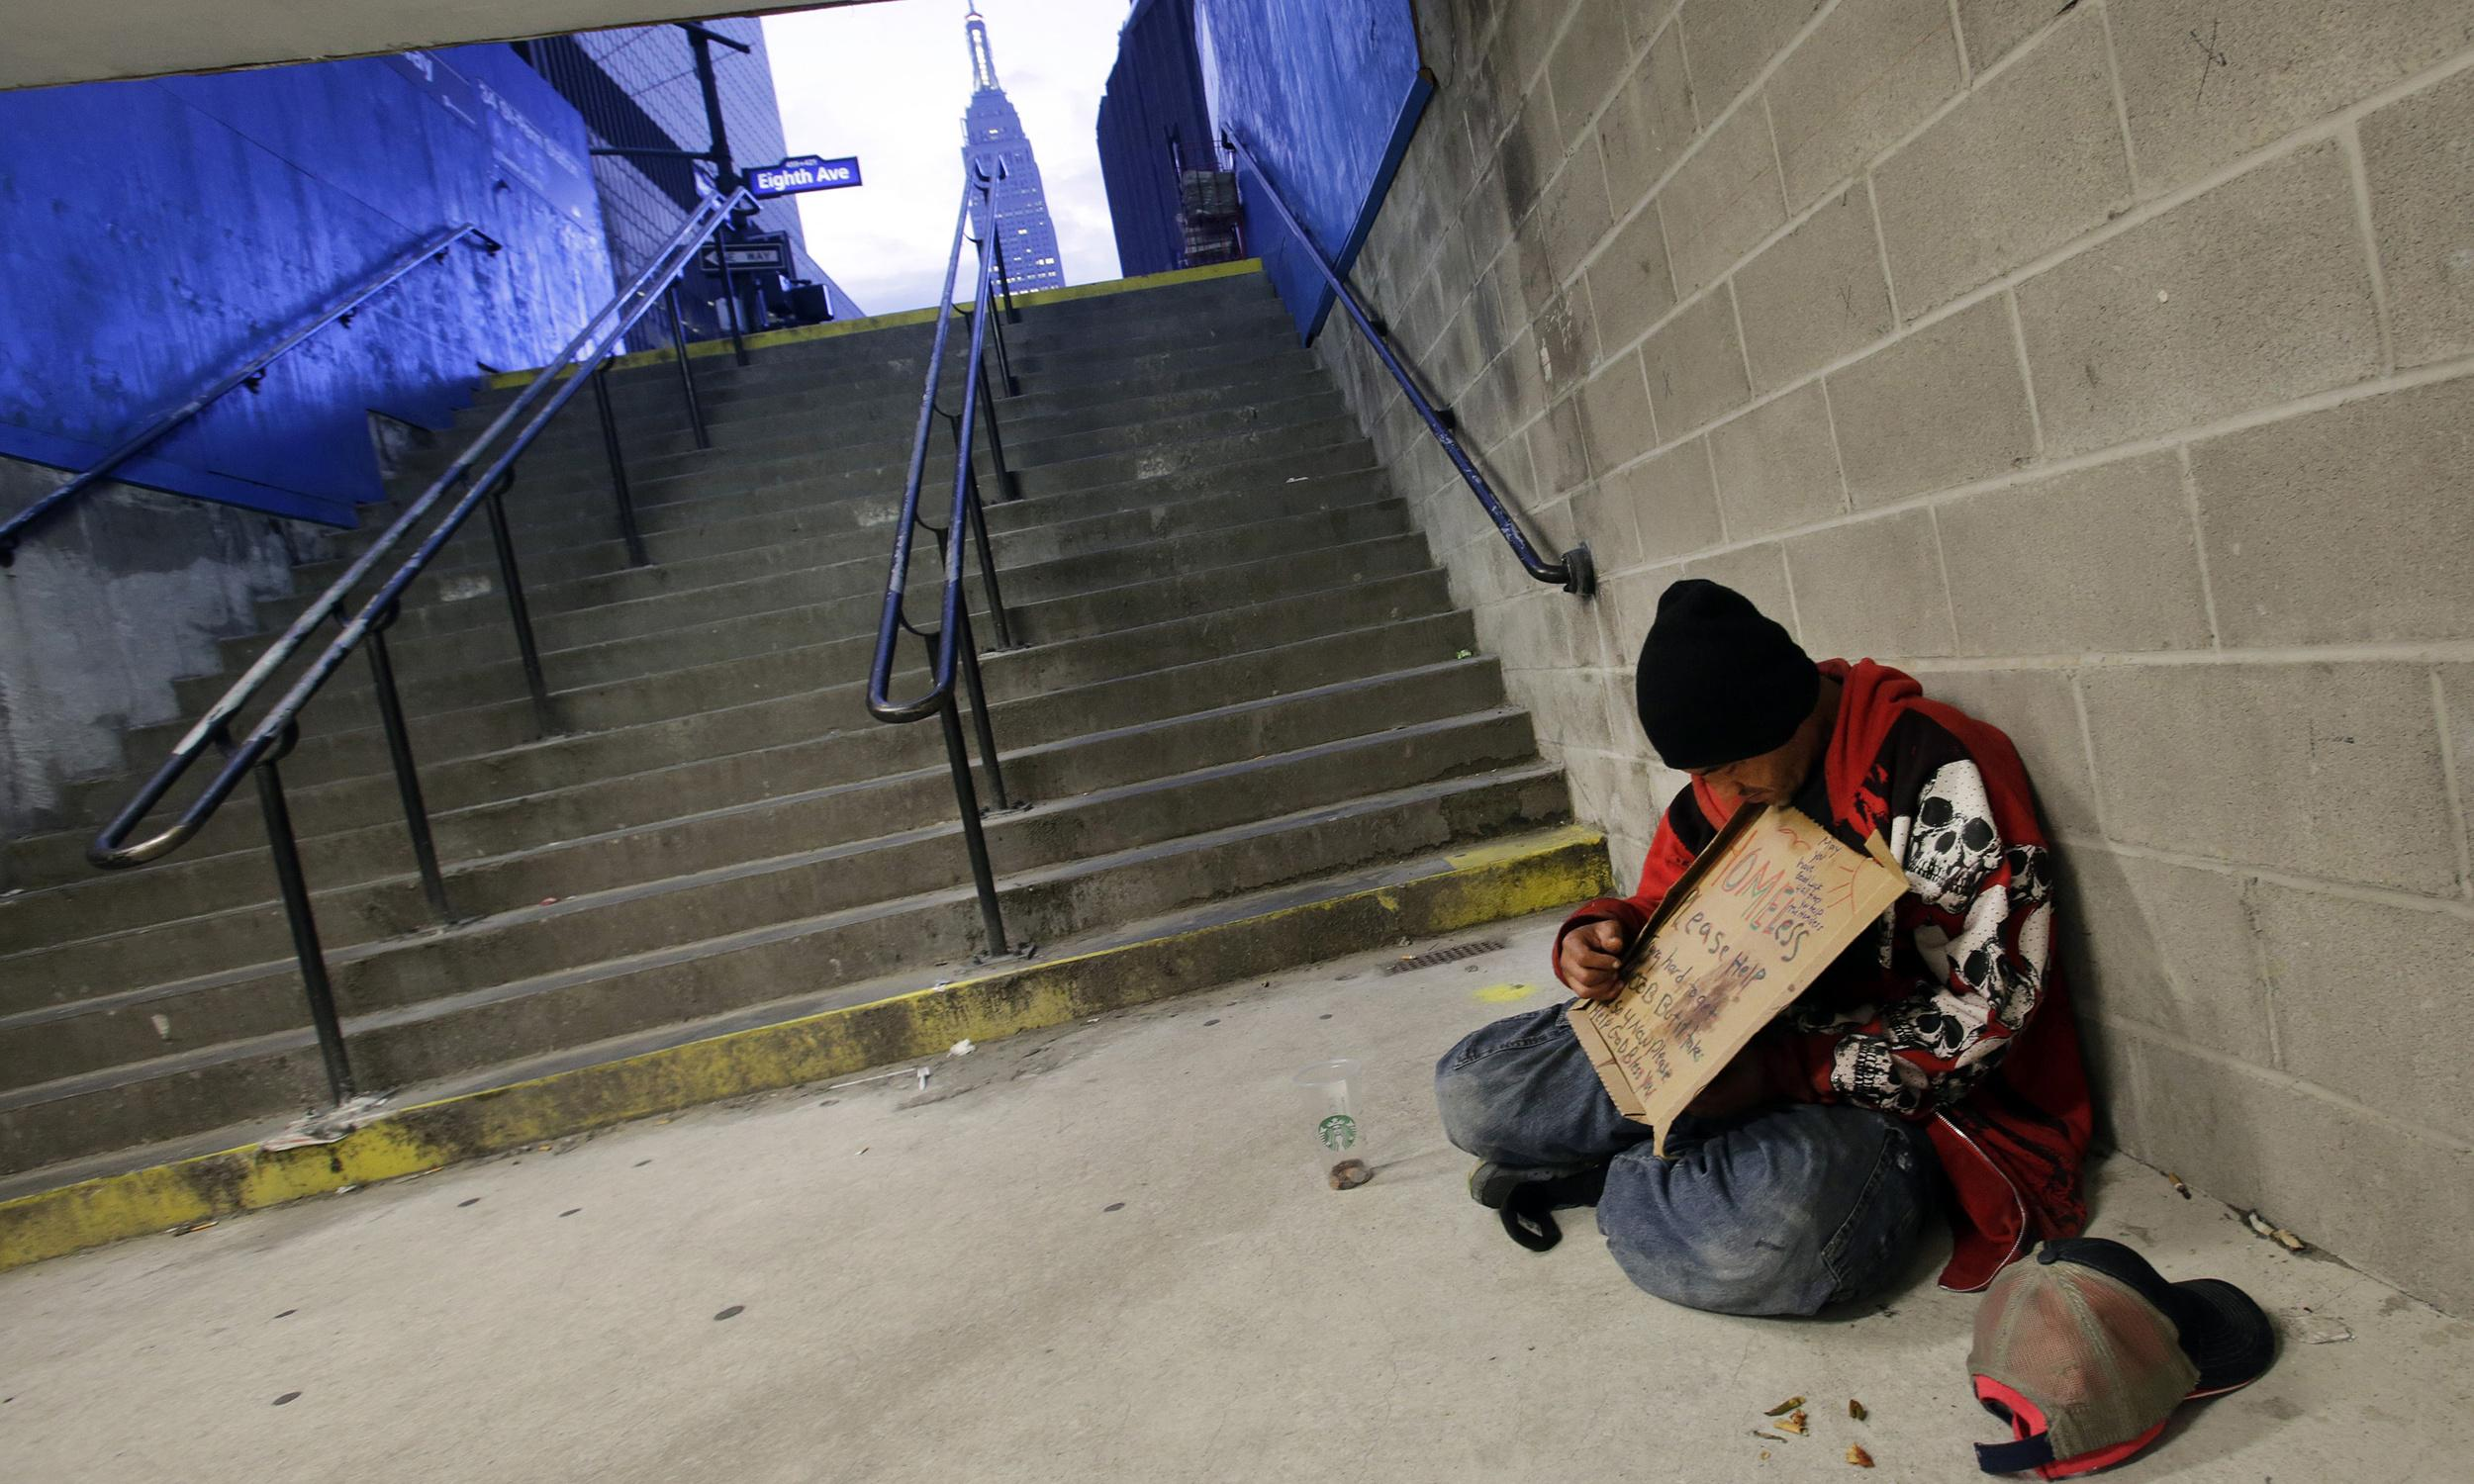 'I'm just sleeping': police crack down on homeless in New York's subways